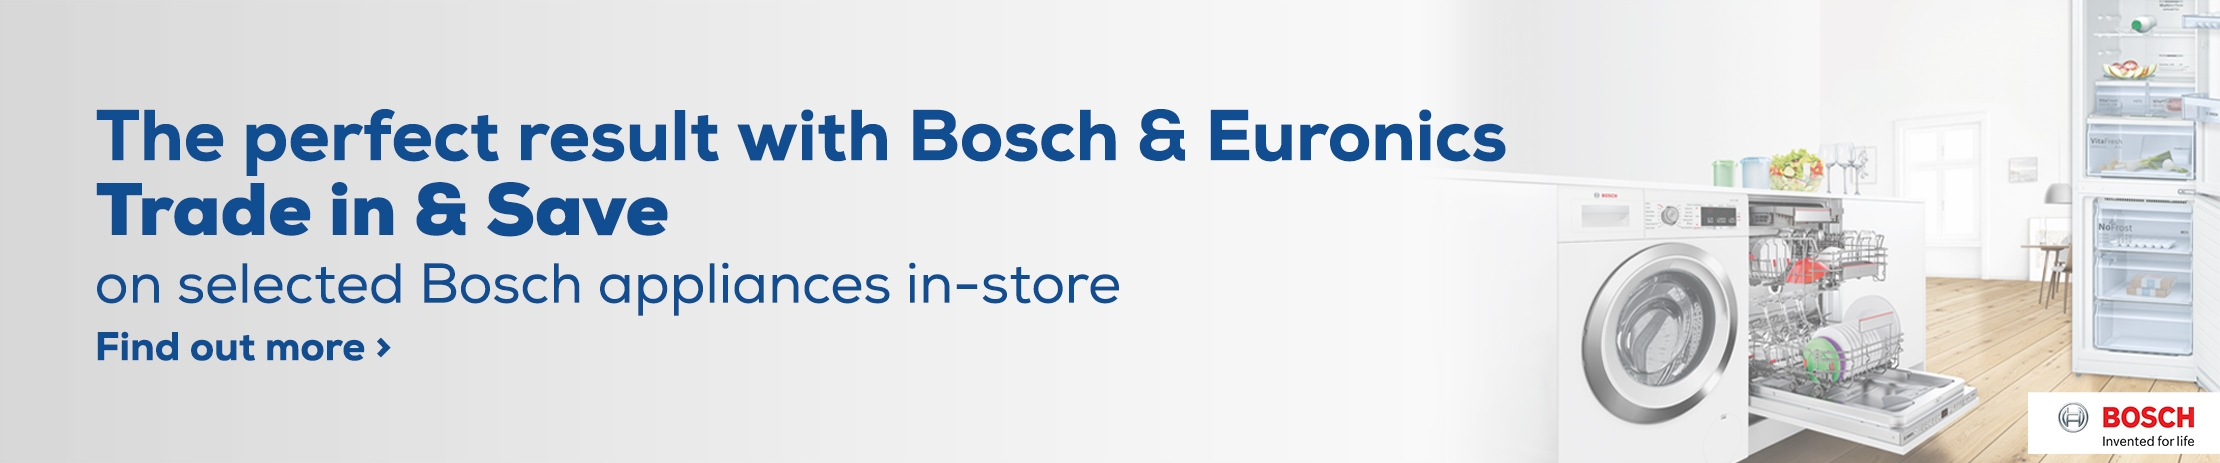 Bosch Trade-In Promotion